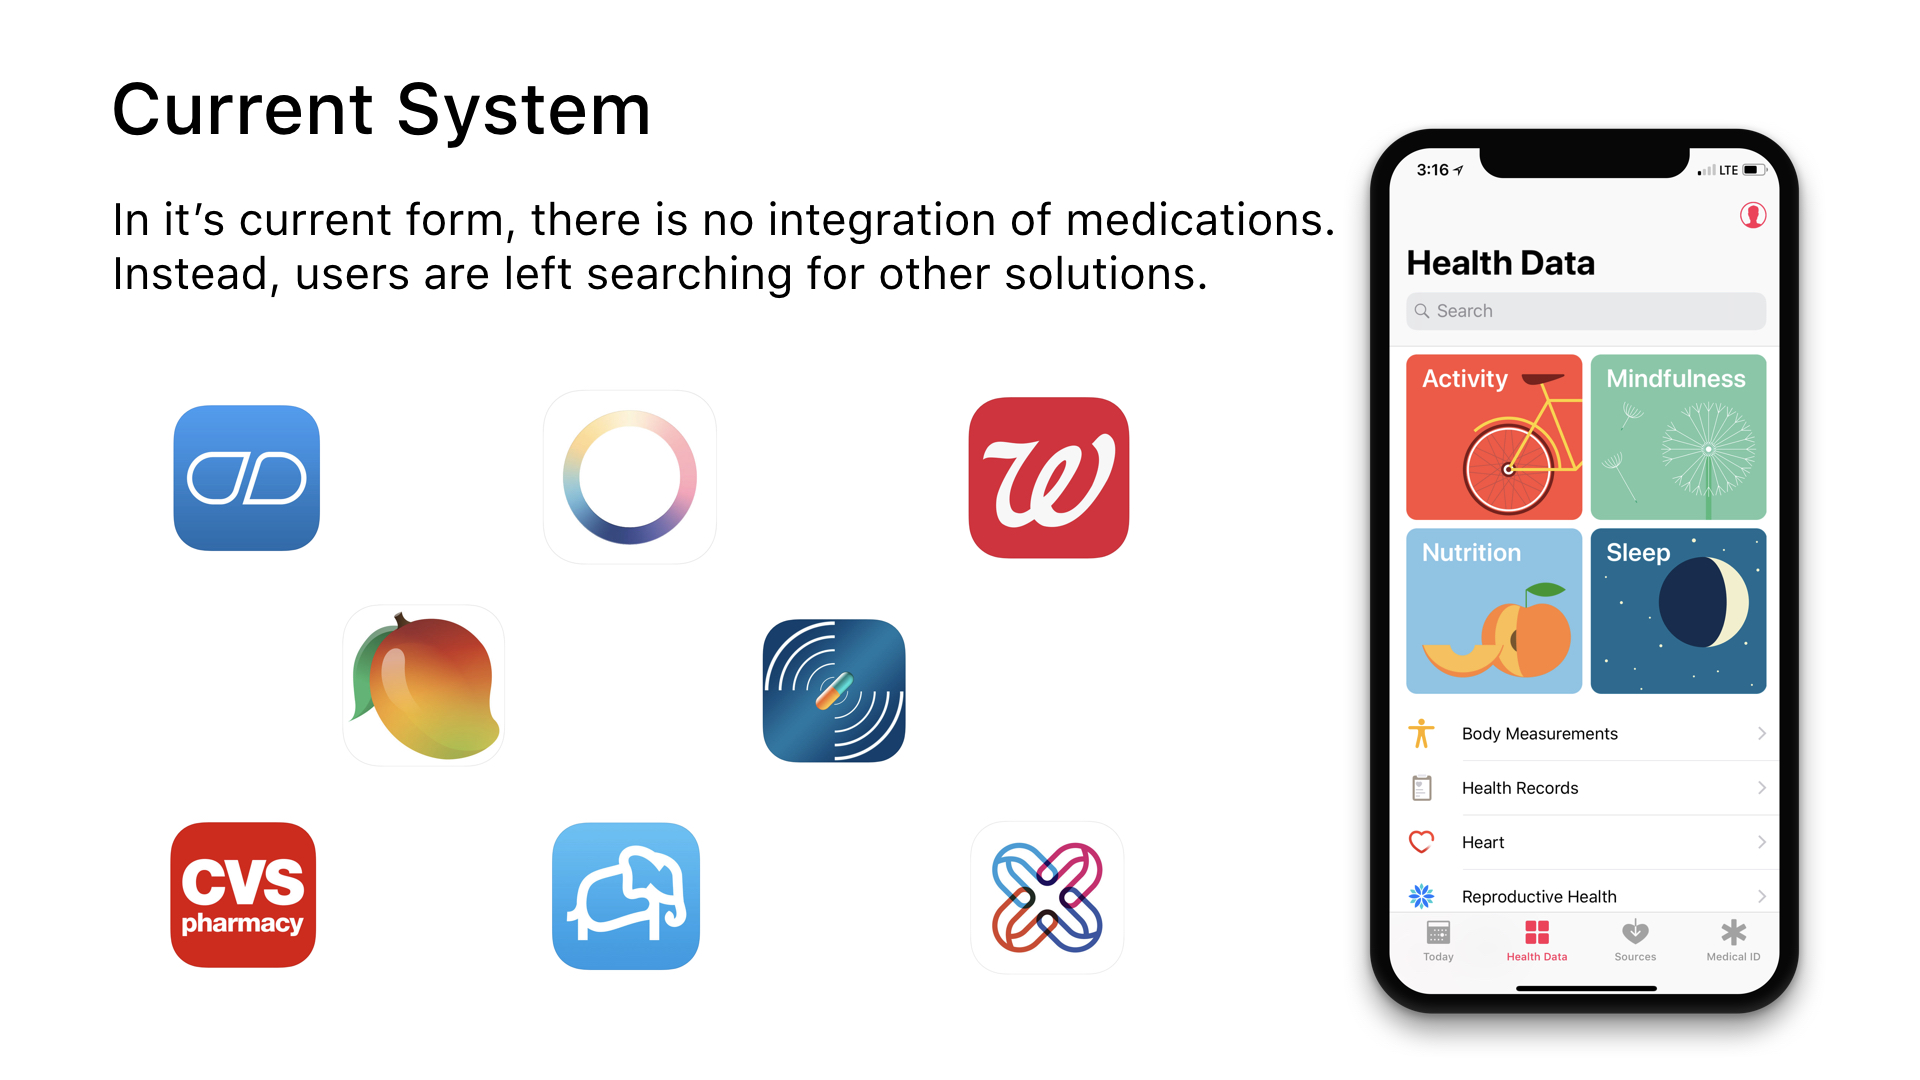 Initial Research - Surveyed the current healthcare app industry as well as analysis of the current features.